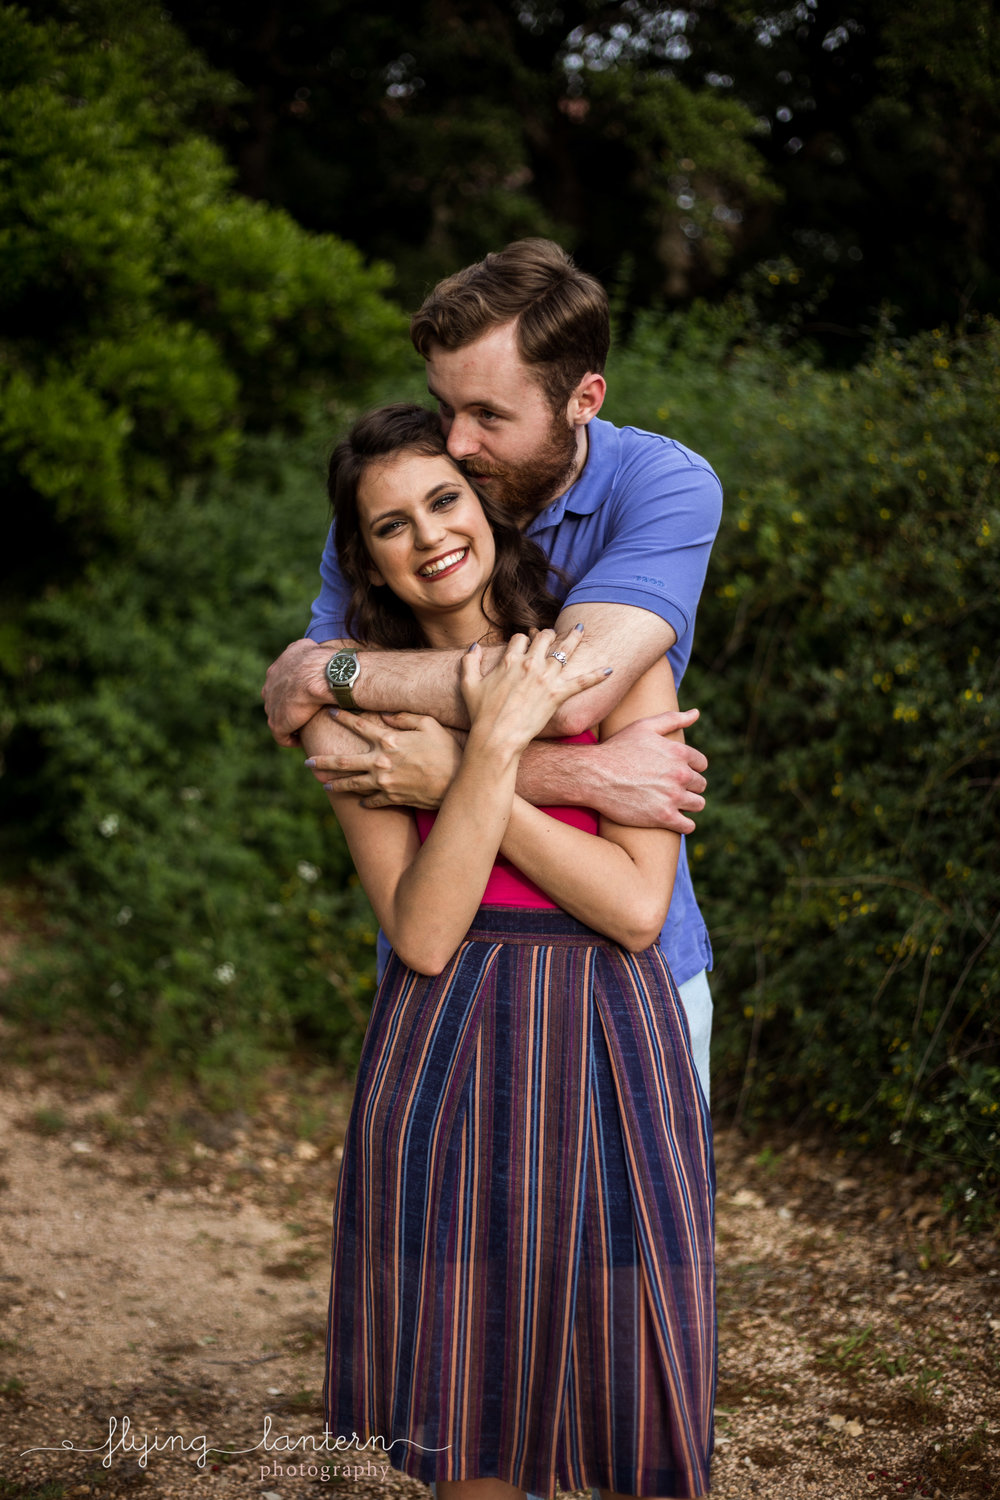 couple engagement portrait at st. edward's university in austin, Texas by erin Reas of Flying Lantern Photography